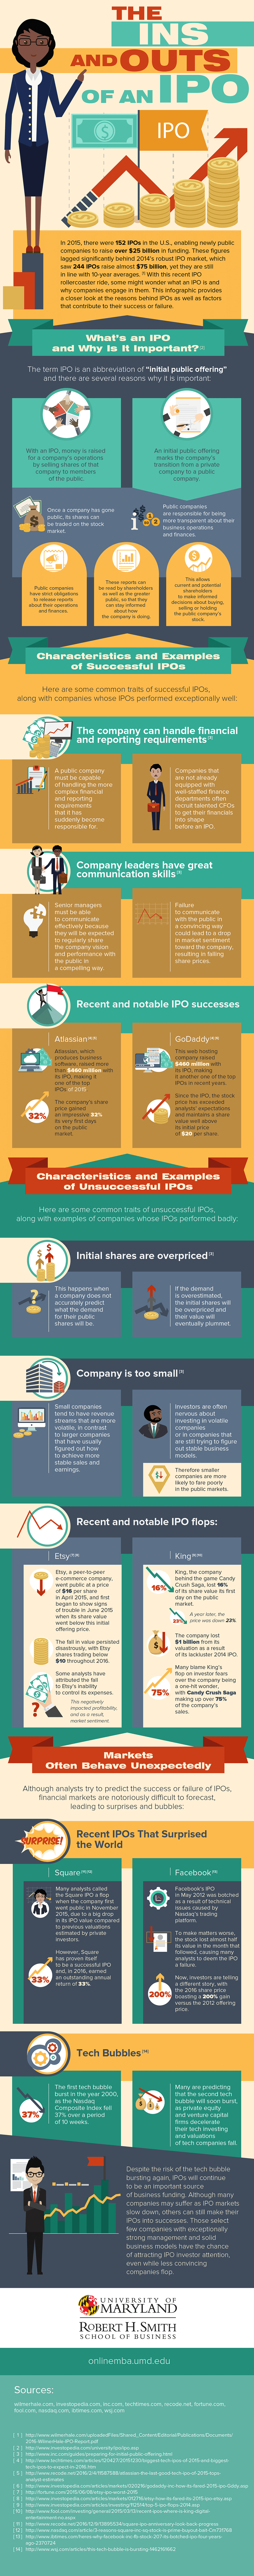 UMD-MBA-The_Ins_and_Outs_of-an-ipp-infographic